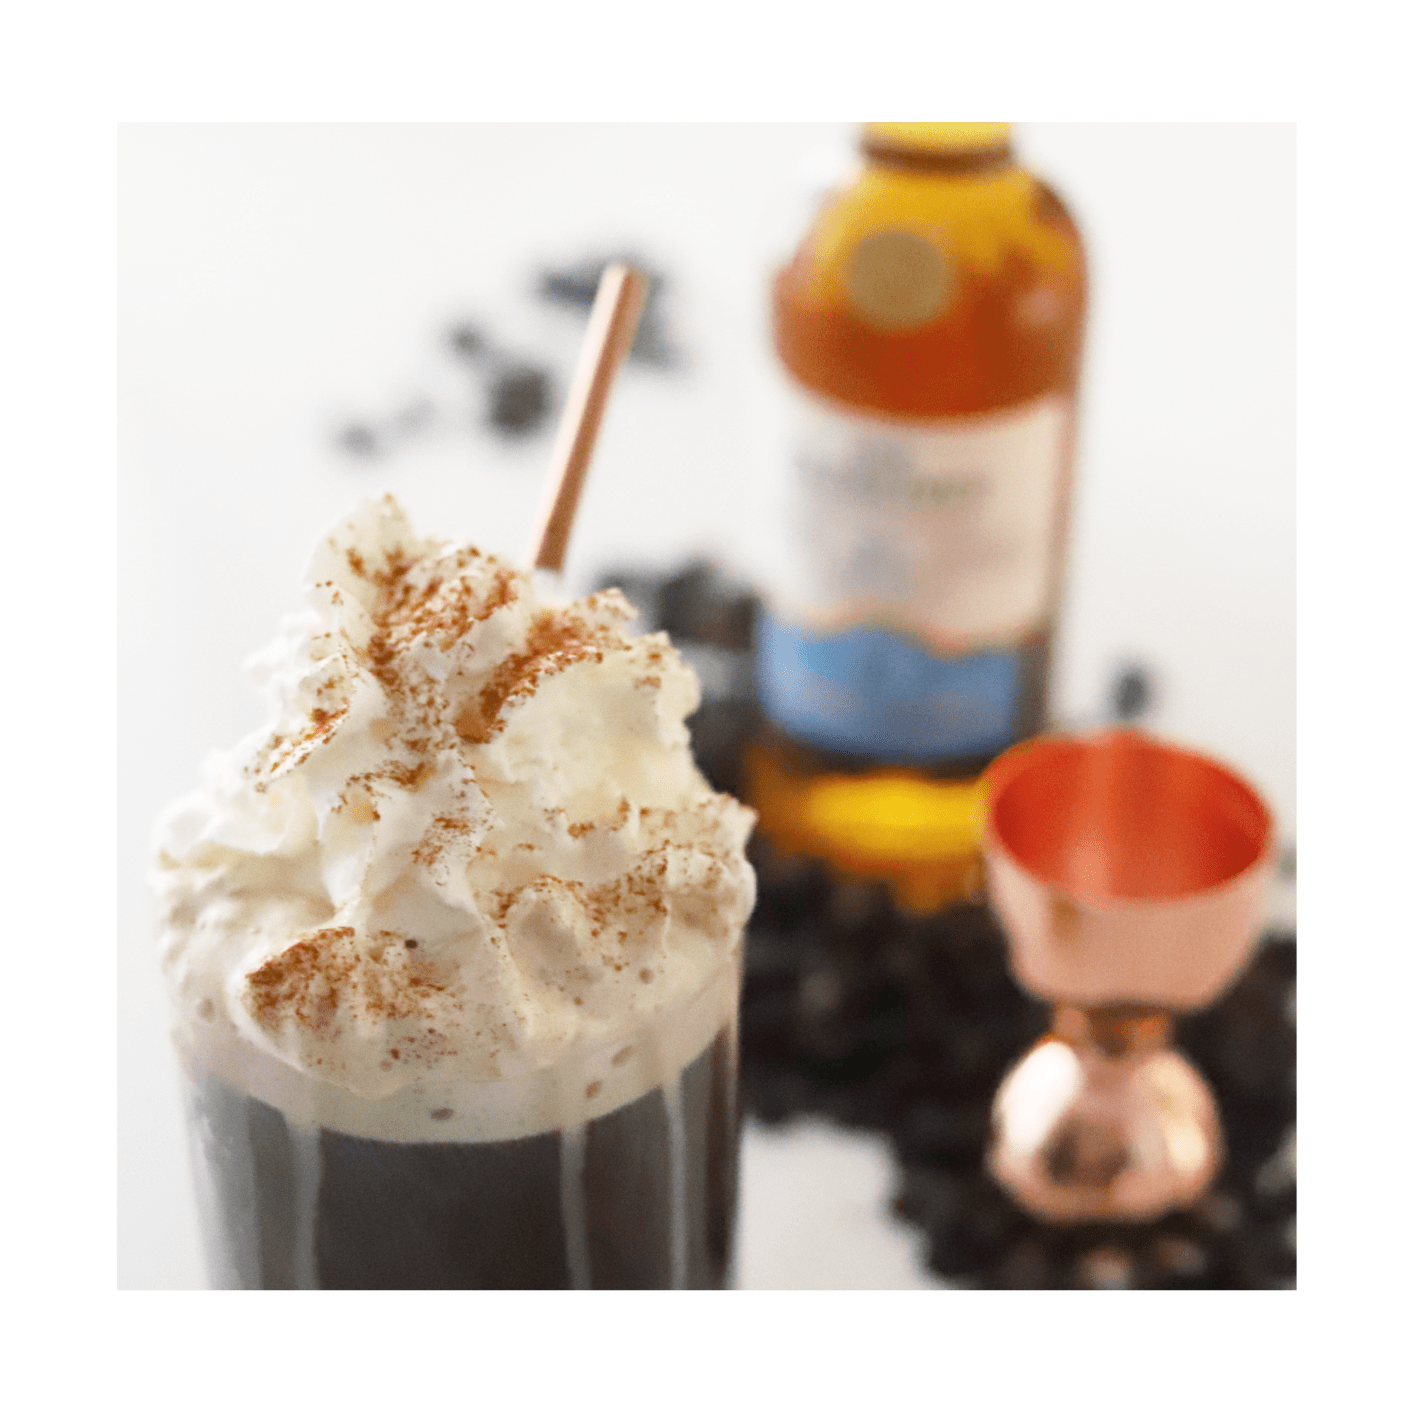 Liberica Scotch Coffee, Using The Glenlivet 12 Year old Single Malt Scotch Whisky coffee cocktails